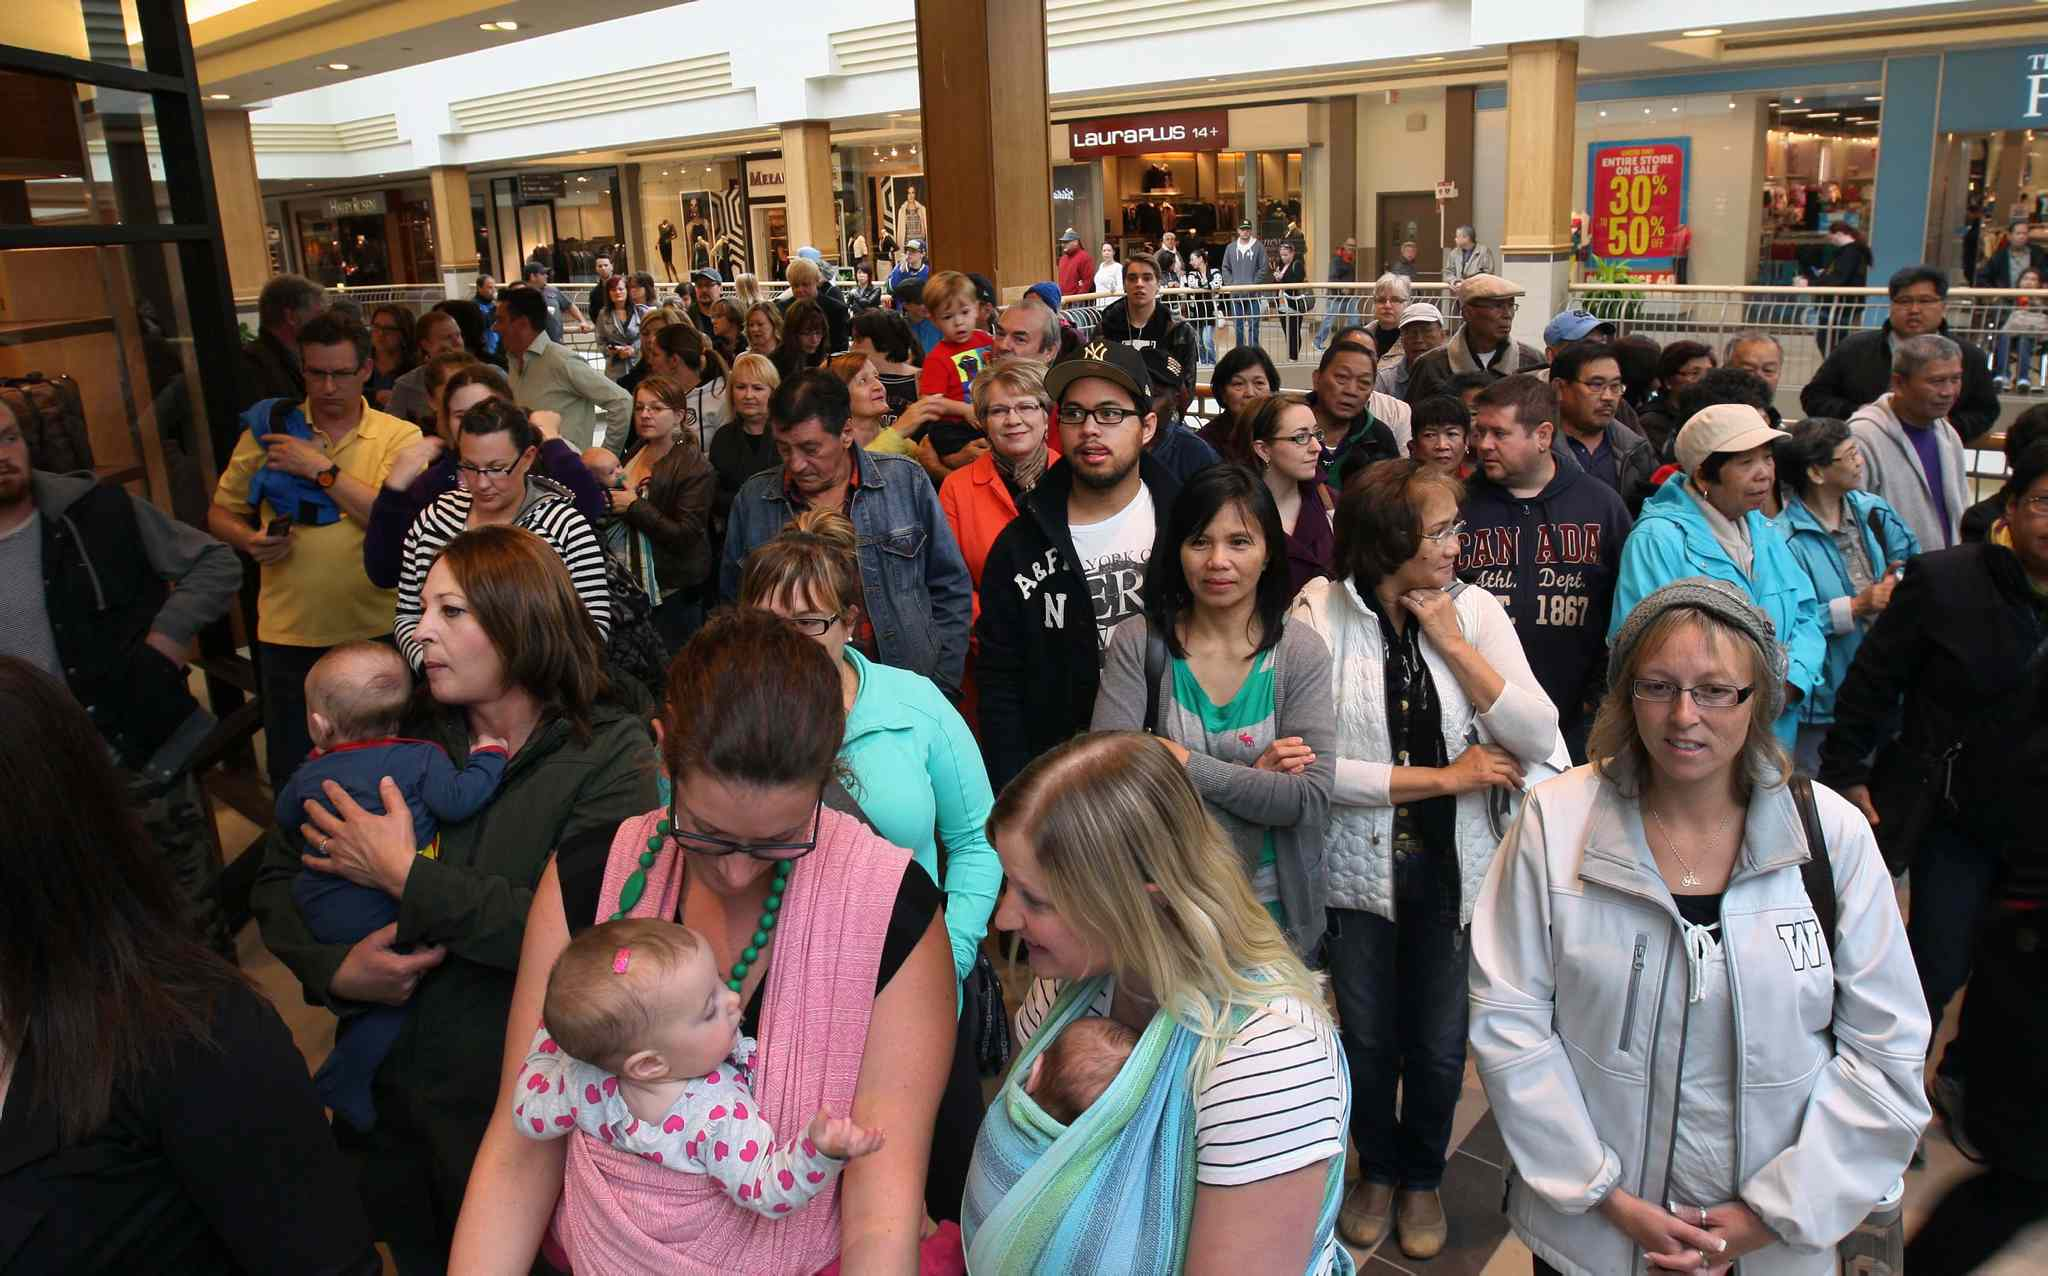 Crowds line up to check out the newly opened stores.